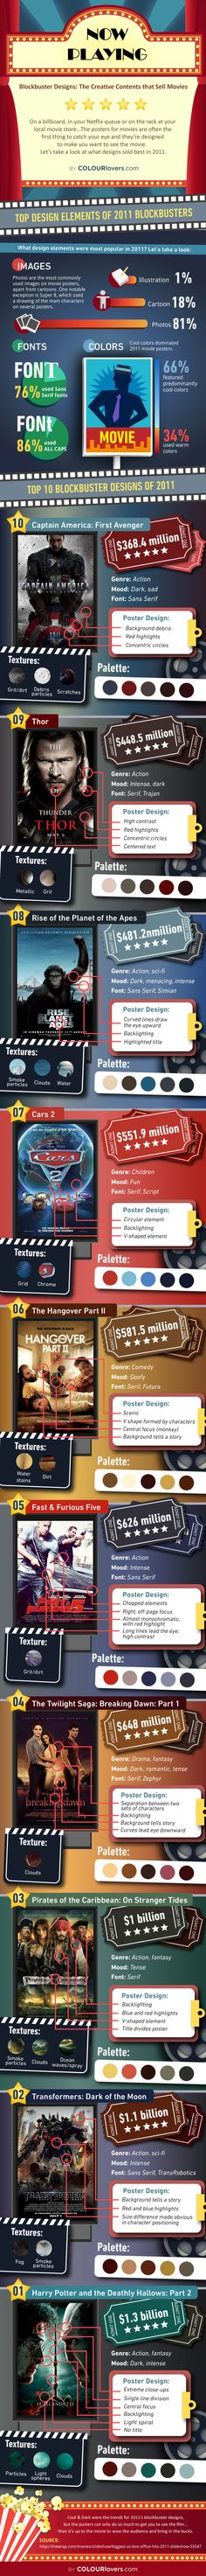 This is Cool - How design sells movies (Infographic)